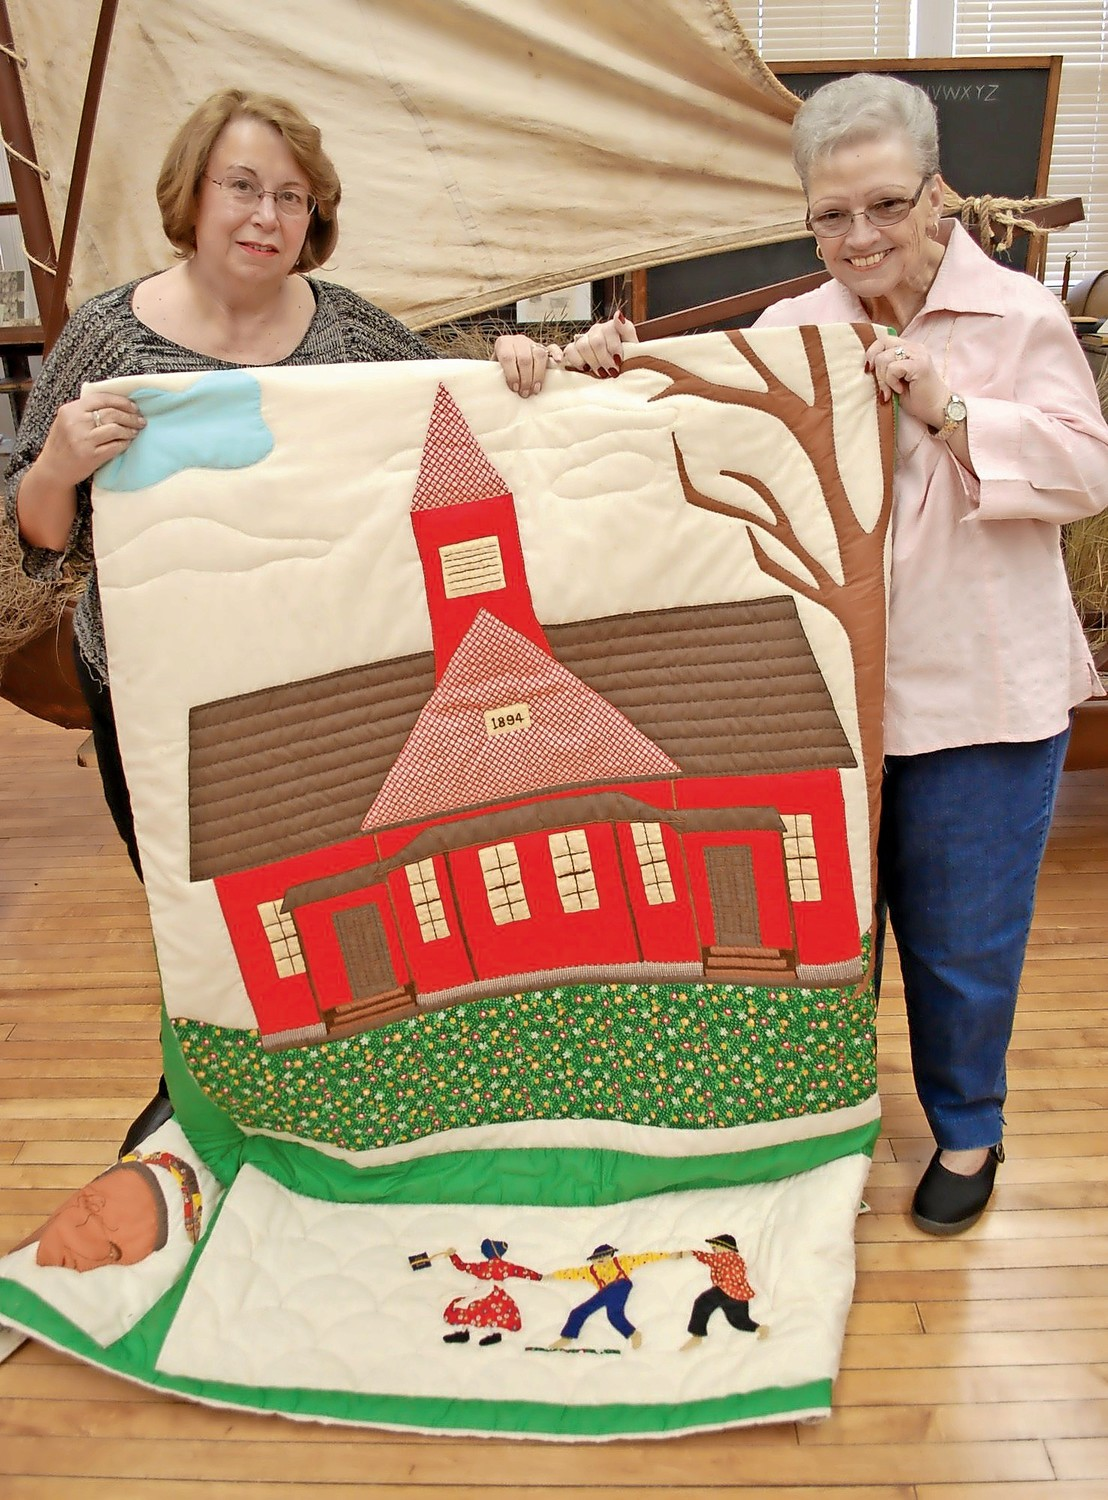 Bongiovi and past Chamber of Commerce President Carla Powell showed off a quilt made in the mid-1970s by 16 women in Seaford, depicting the former schoolhouse that now serves as the local history museum.